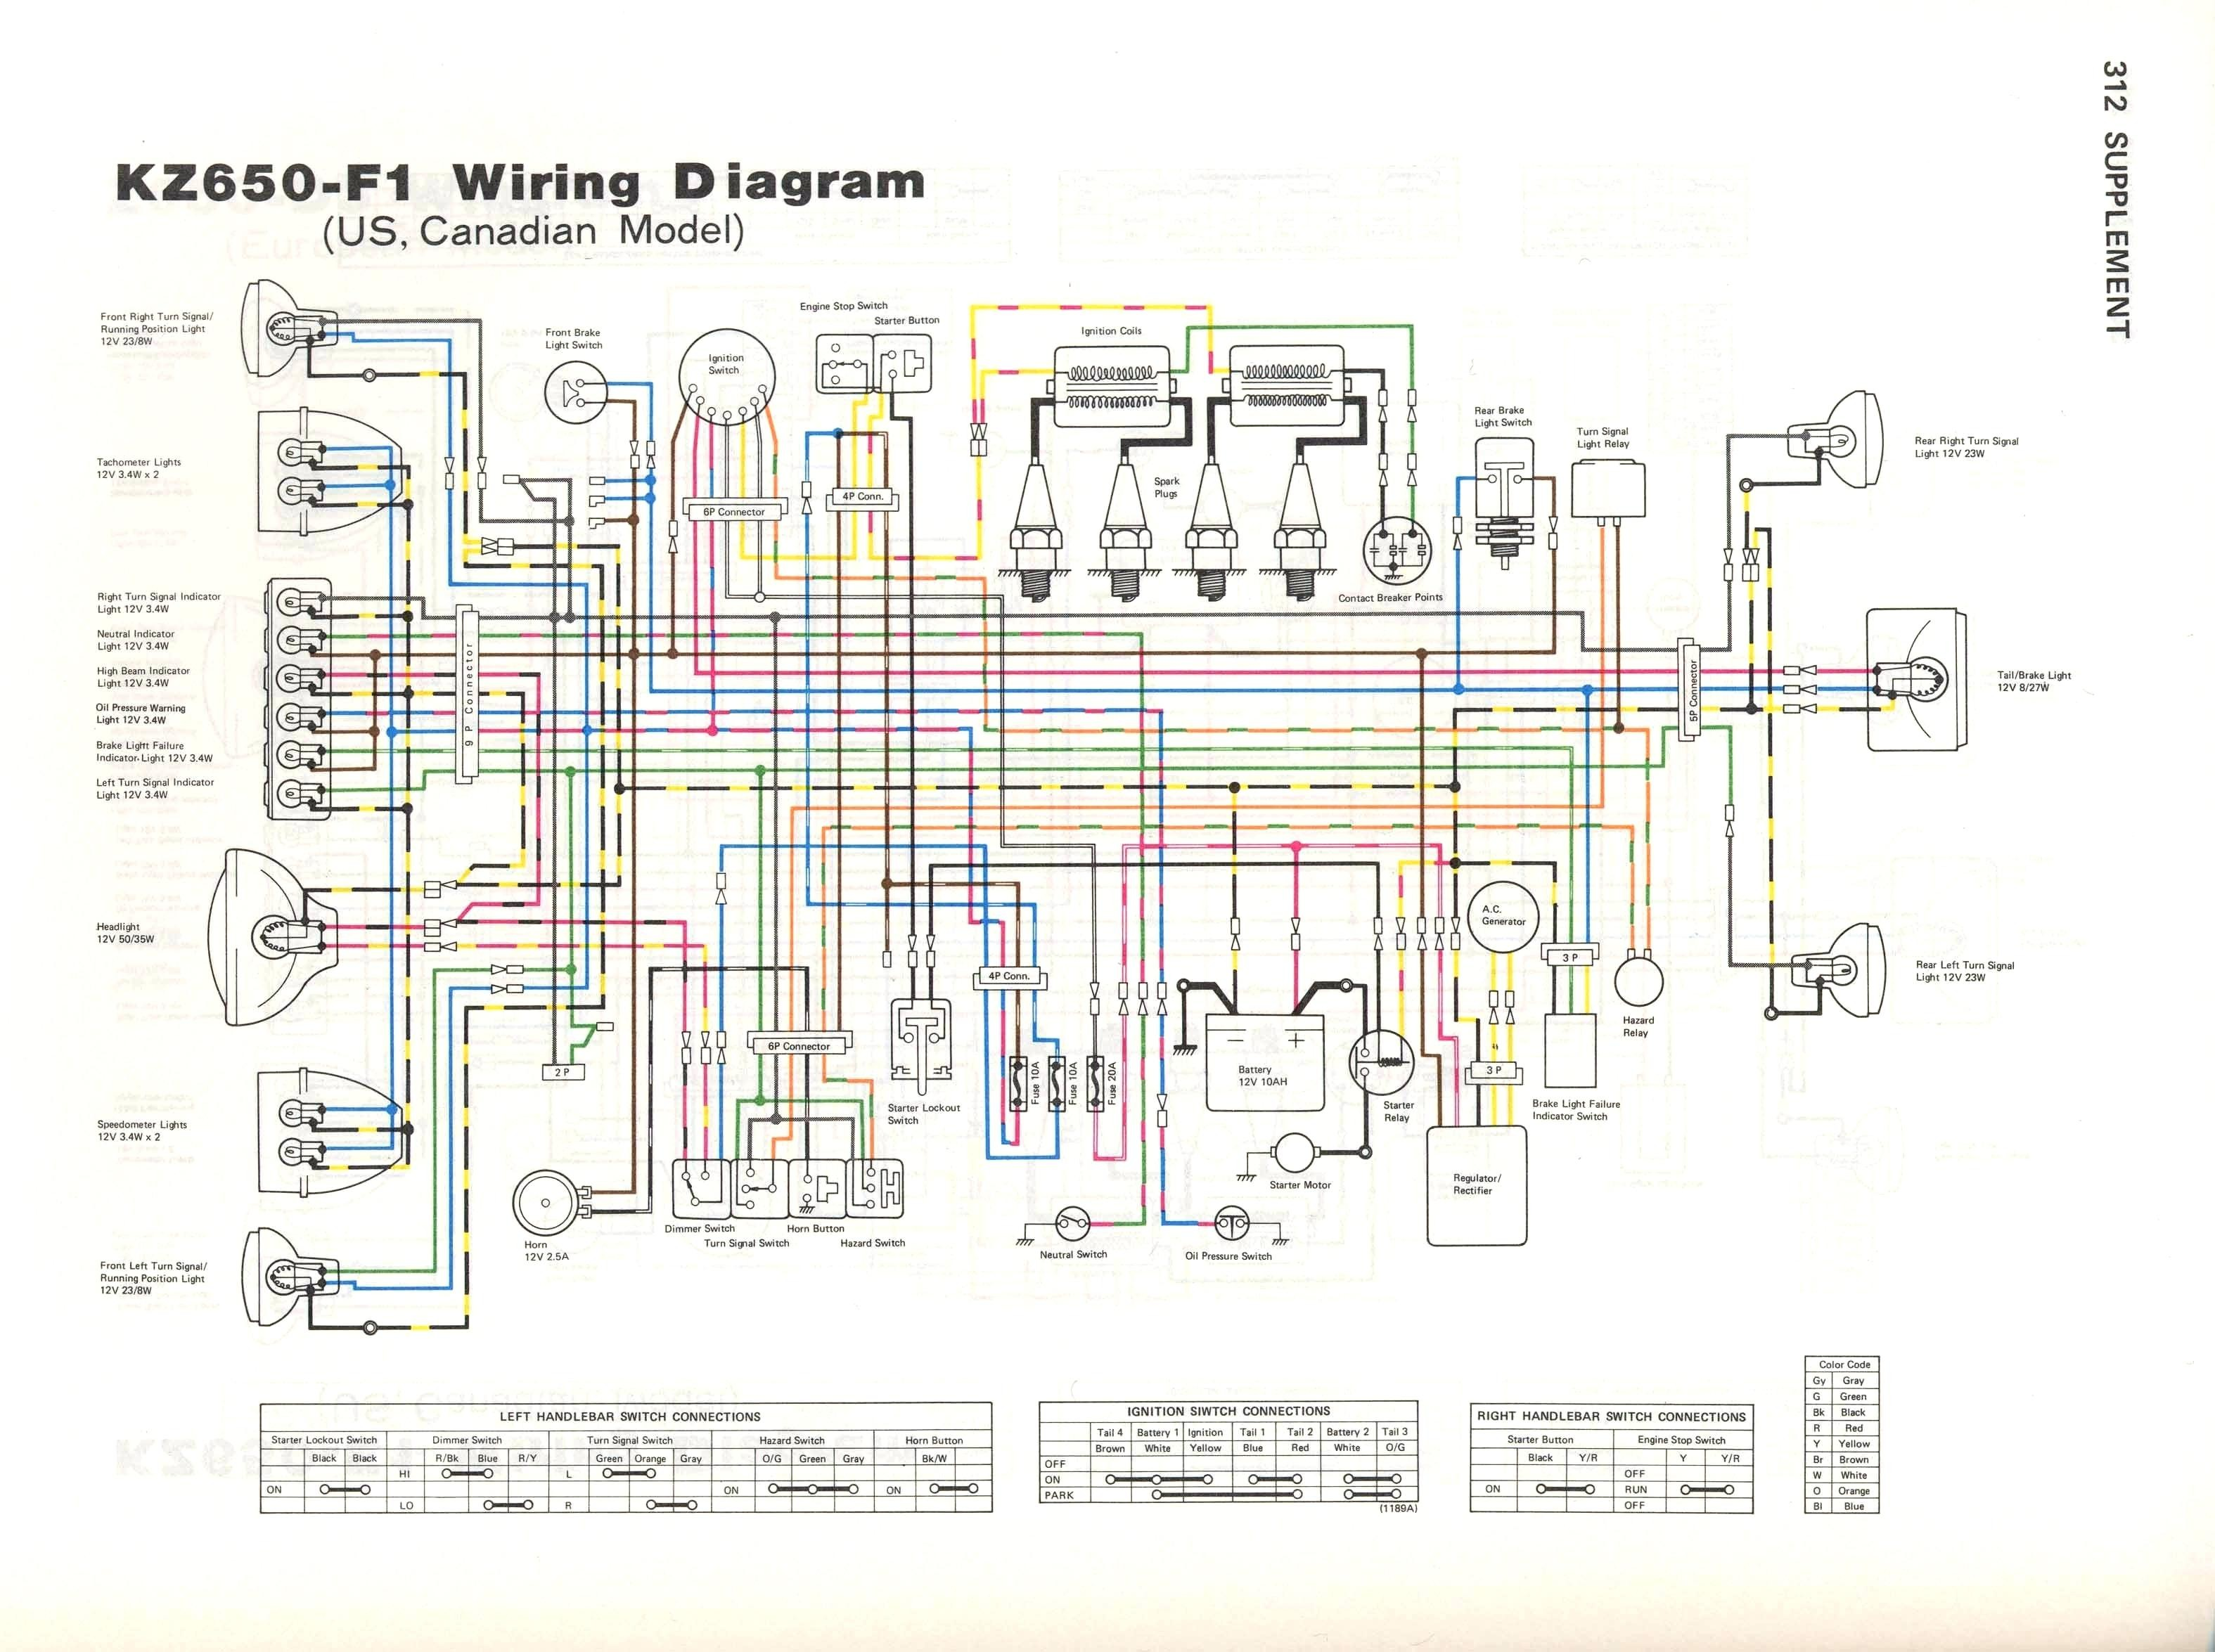 Mega Wiring Diagram Best Wiring Diagram for thermostat Baseboard Heater Diagrams